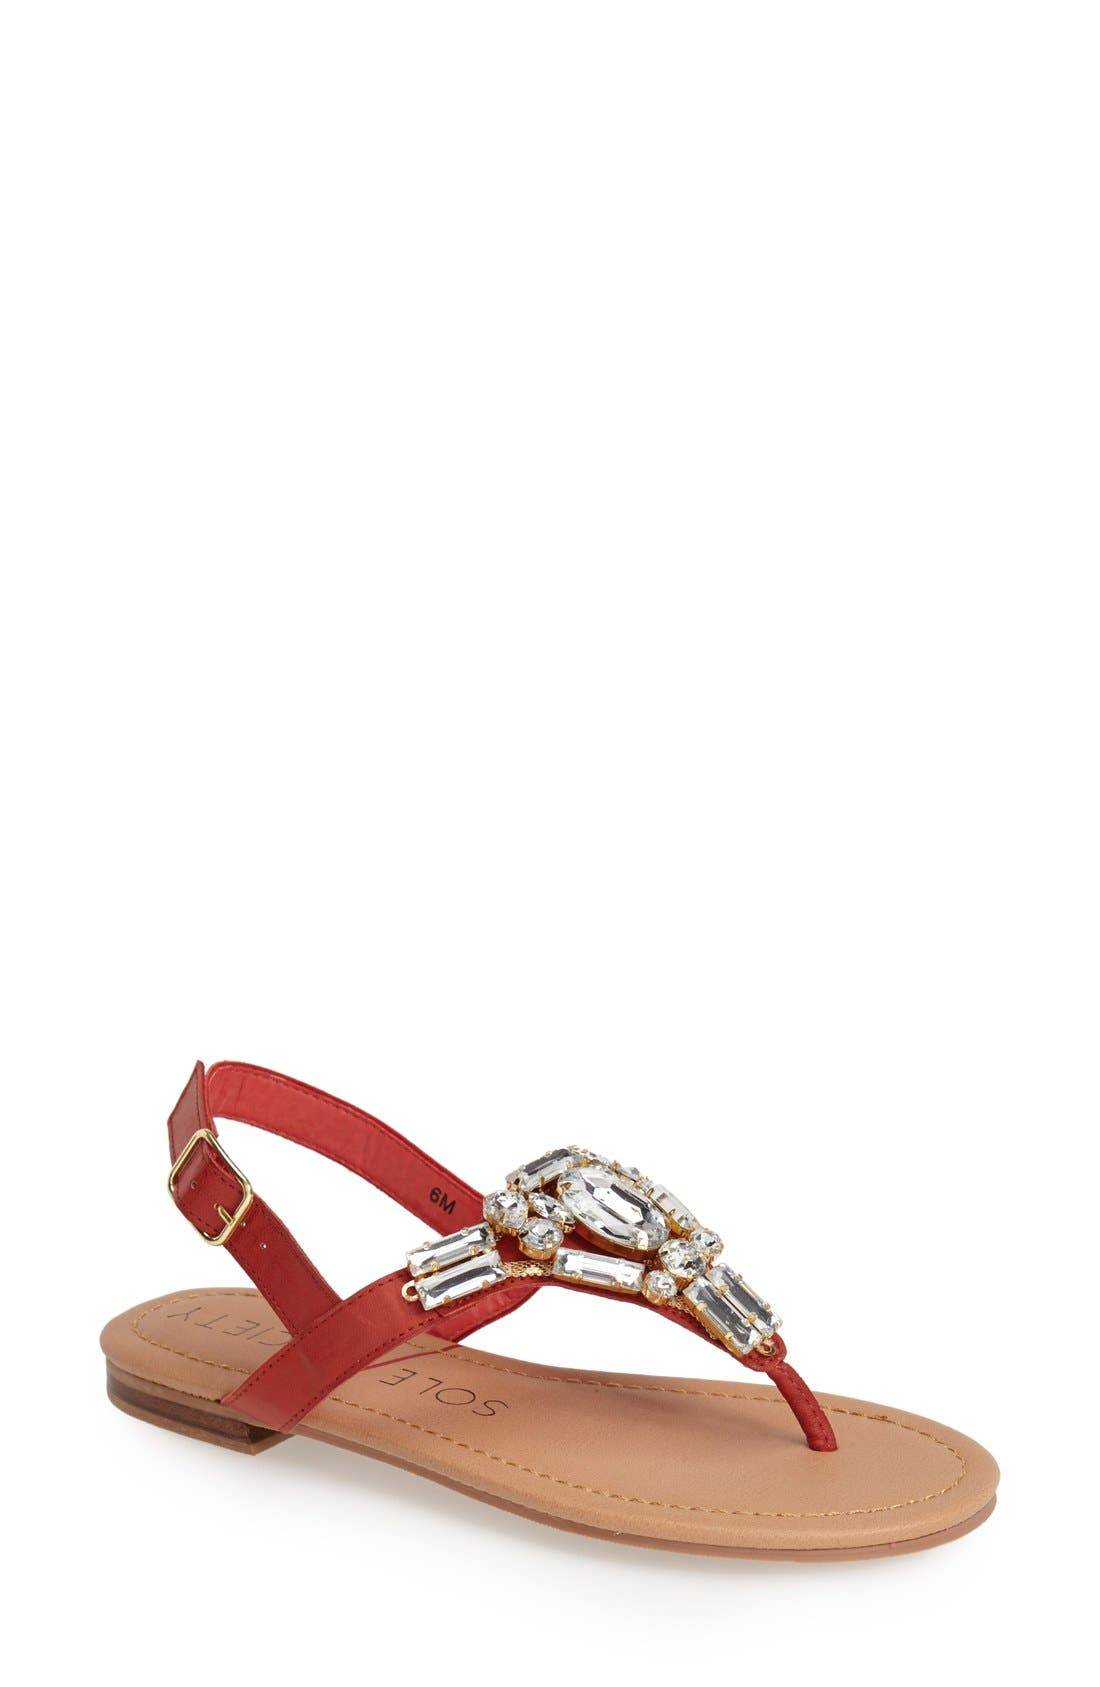 Alternate Image 1 Selected - Sole Society 'Angelin' Crystal Sandal (Women)